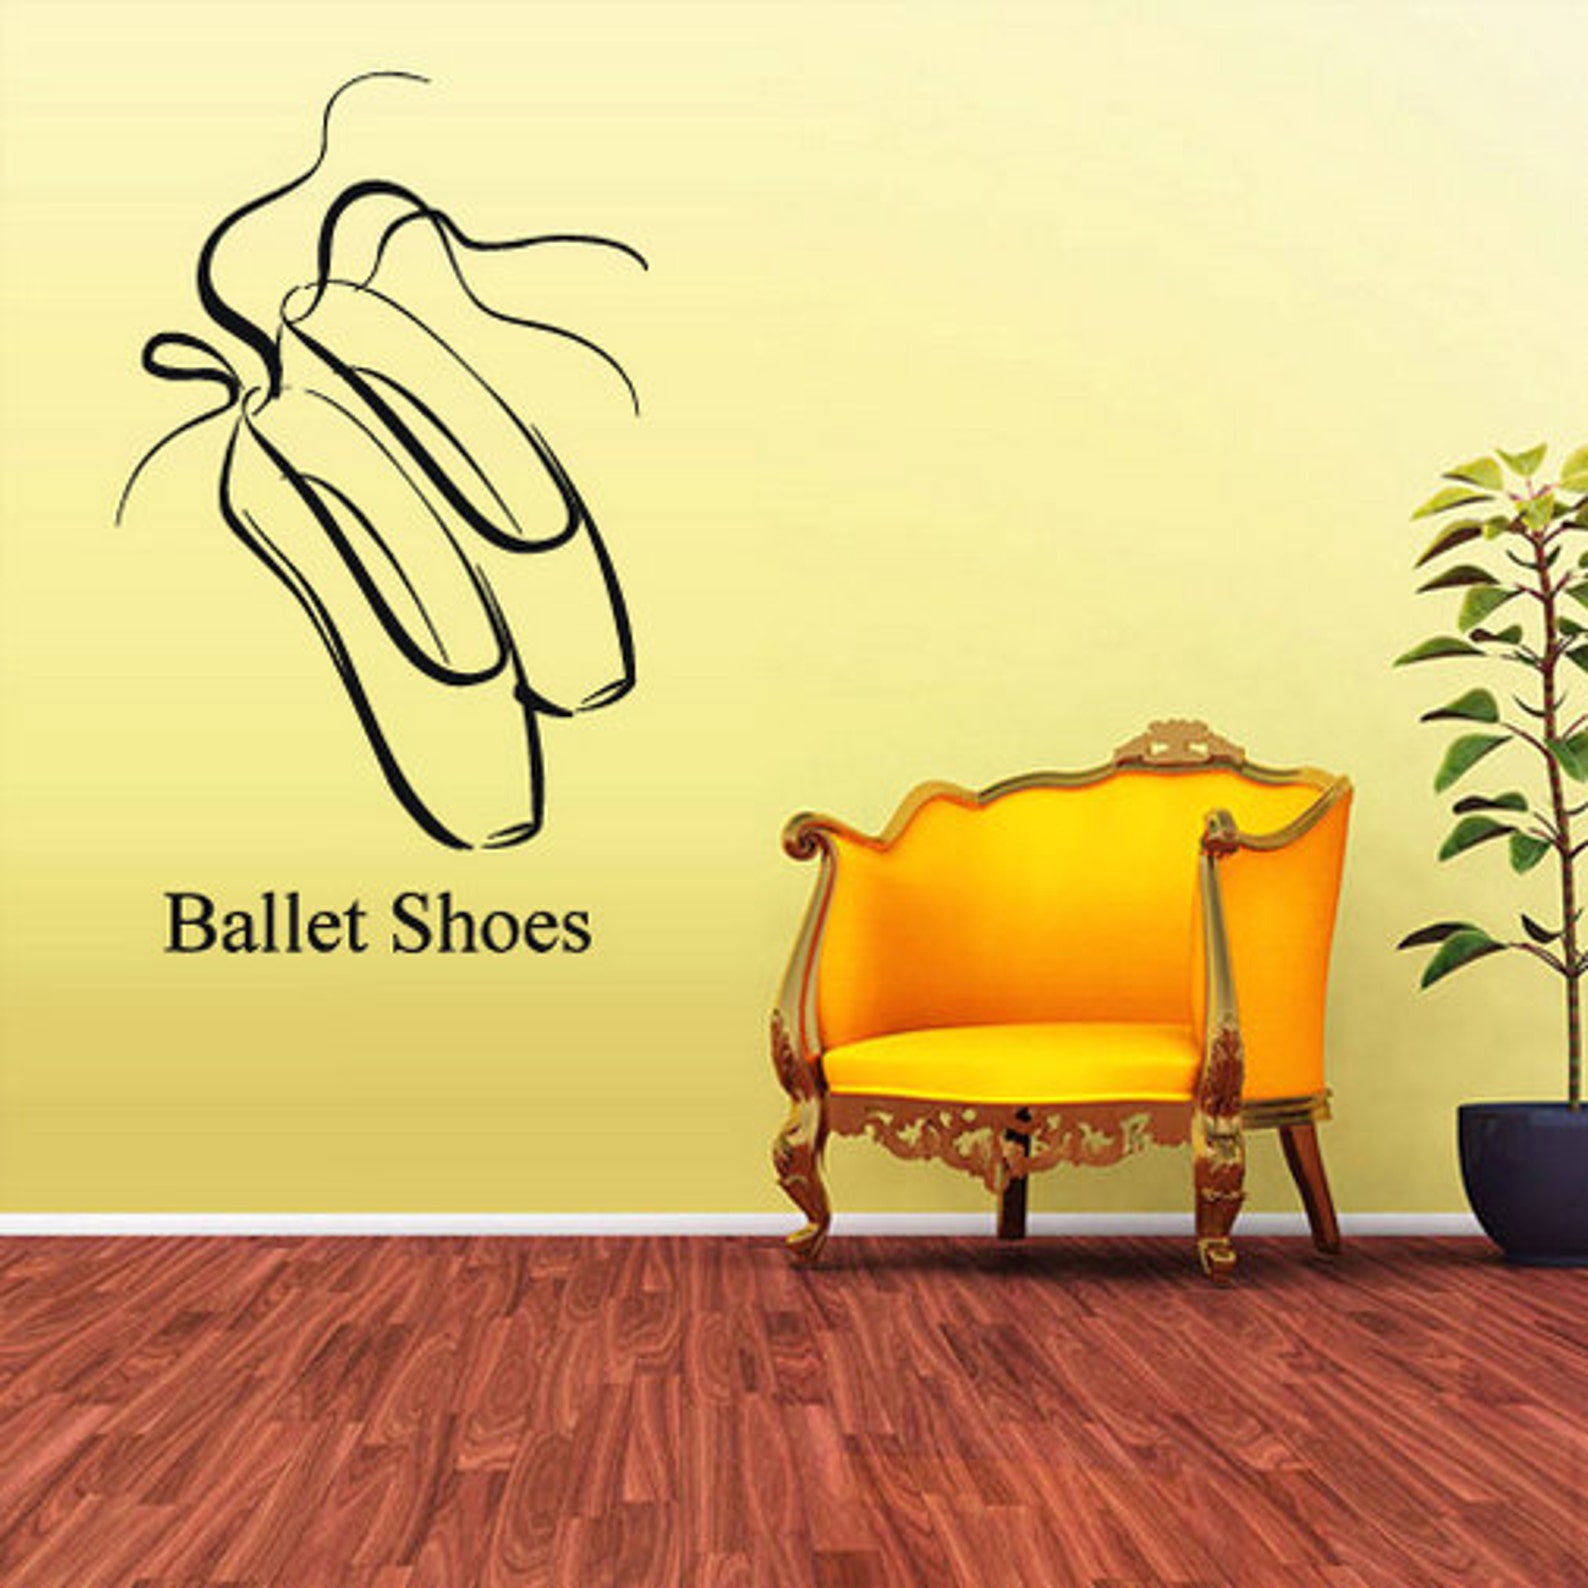 rvz1642 wall decal vinyl sticker decals ballerina ballet shoes dancer kids boys